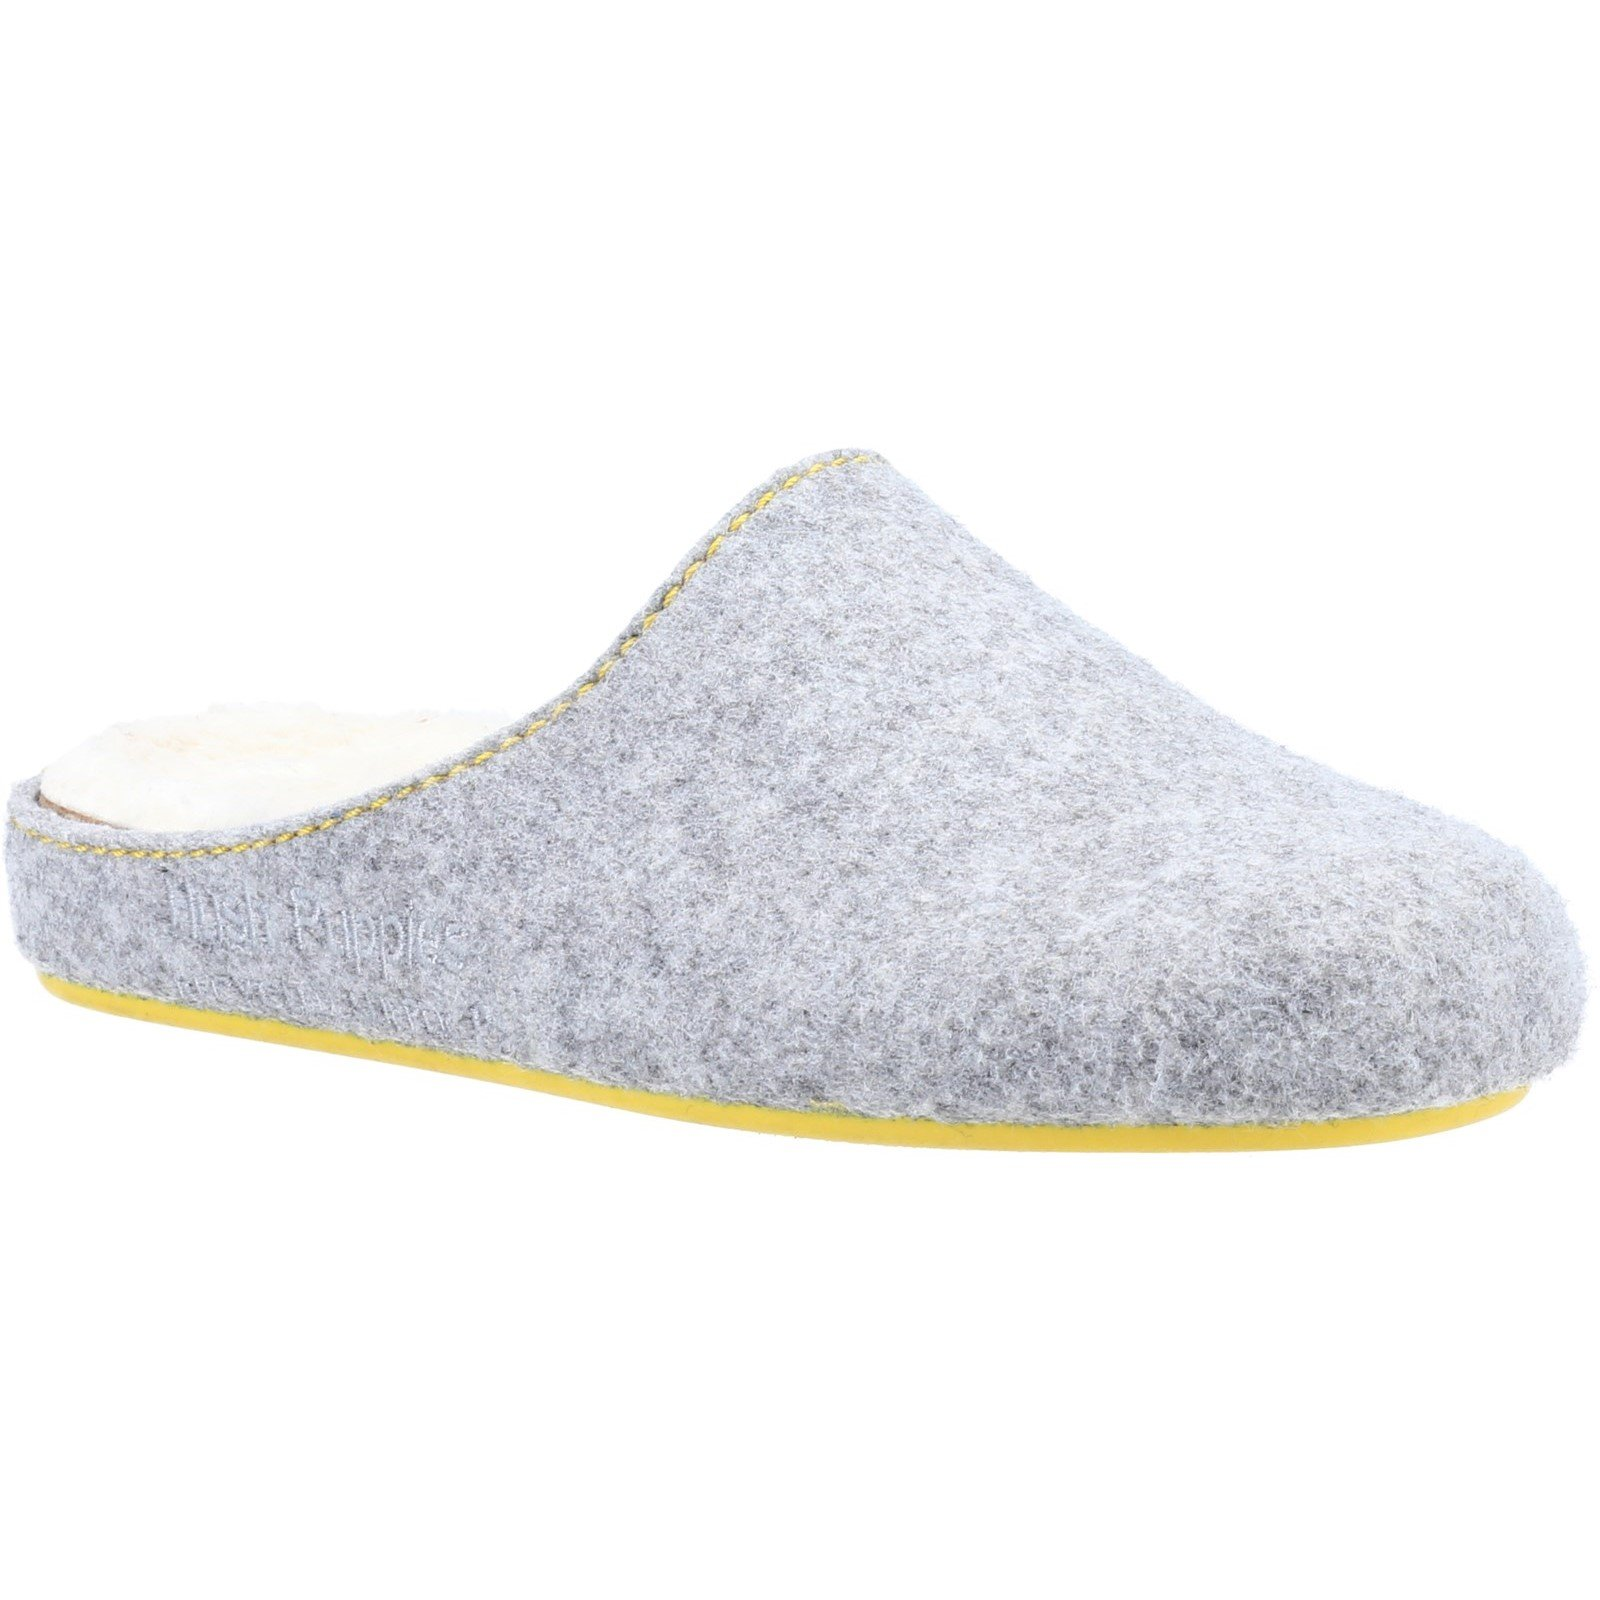 Hush Puppies Women's Remy Slipper Various Colours 32853 - Grey 4